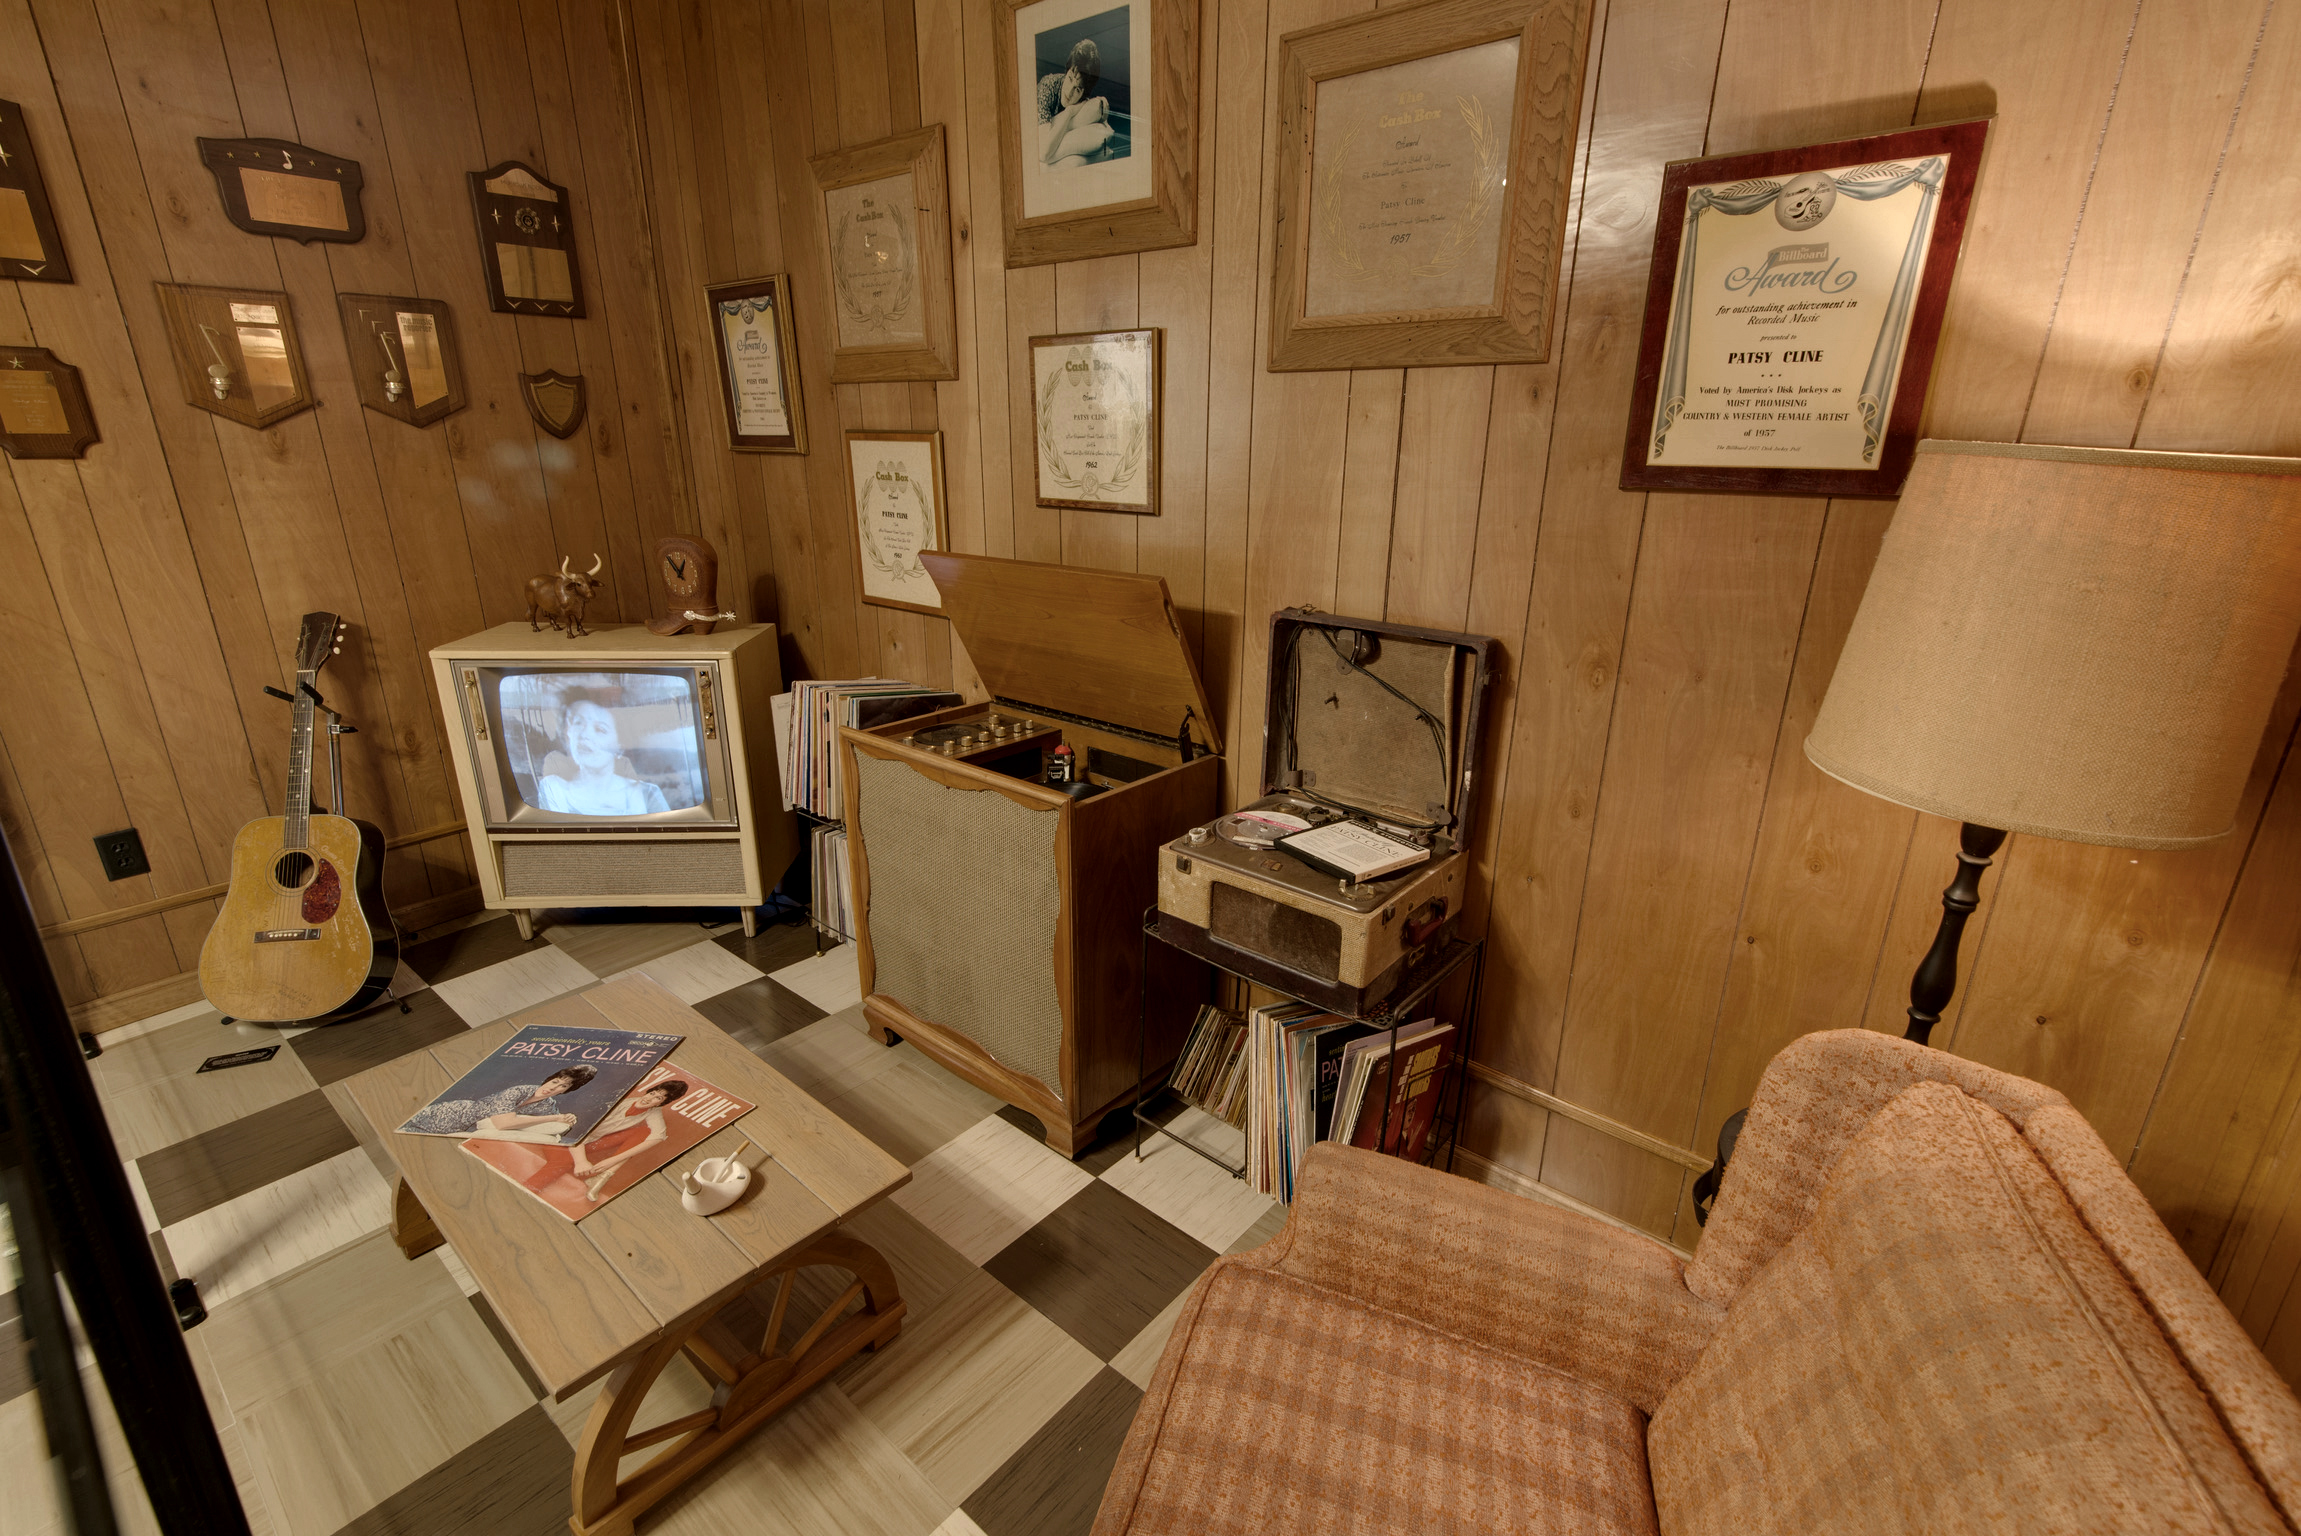 Patsy Cline Museum Room Recreation